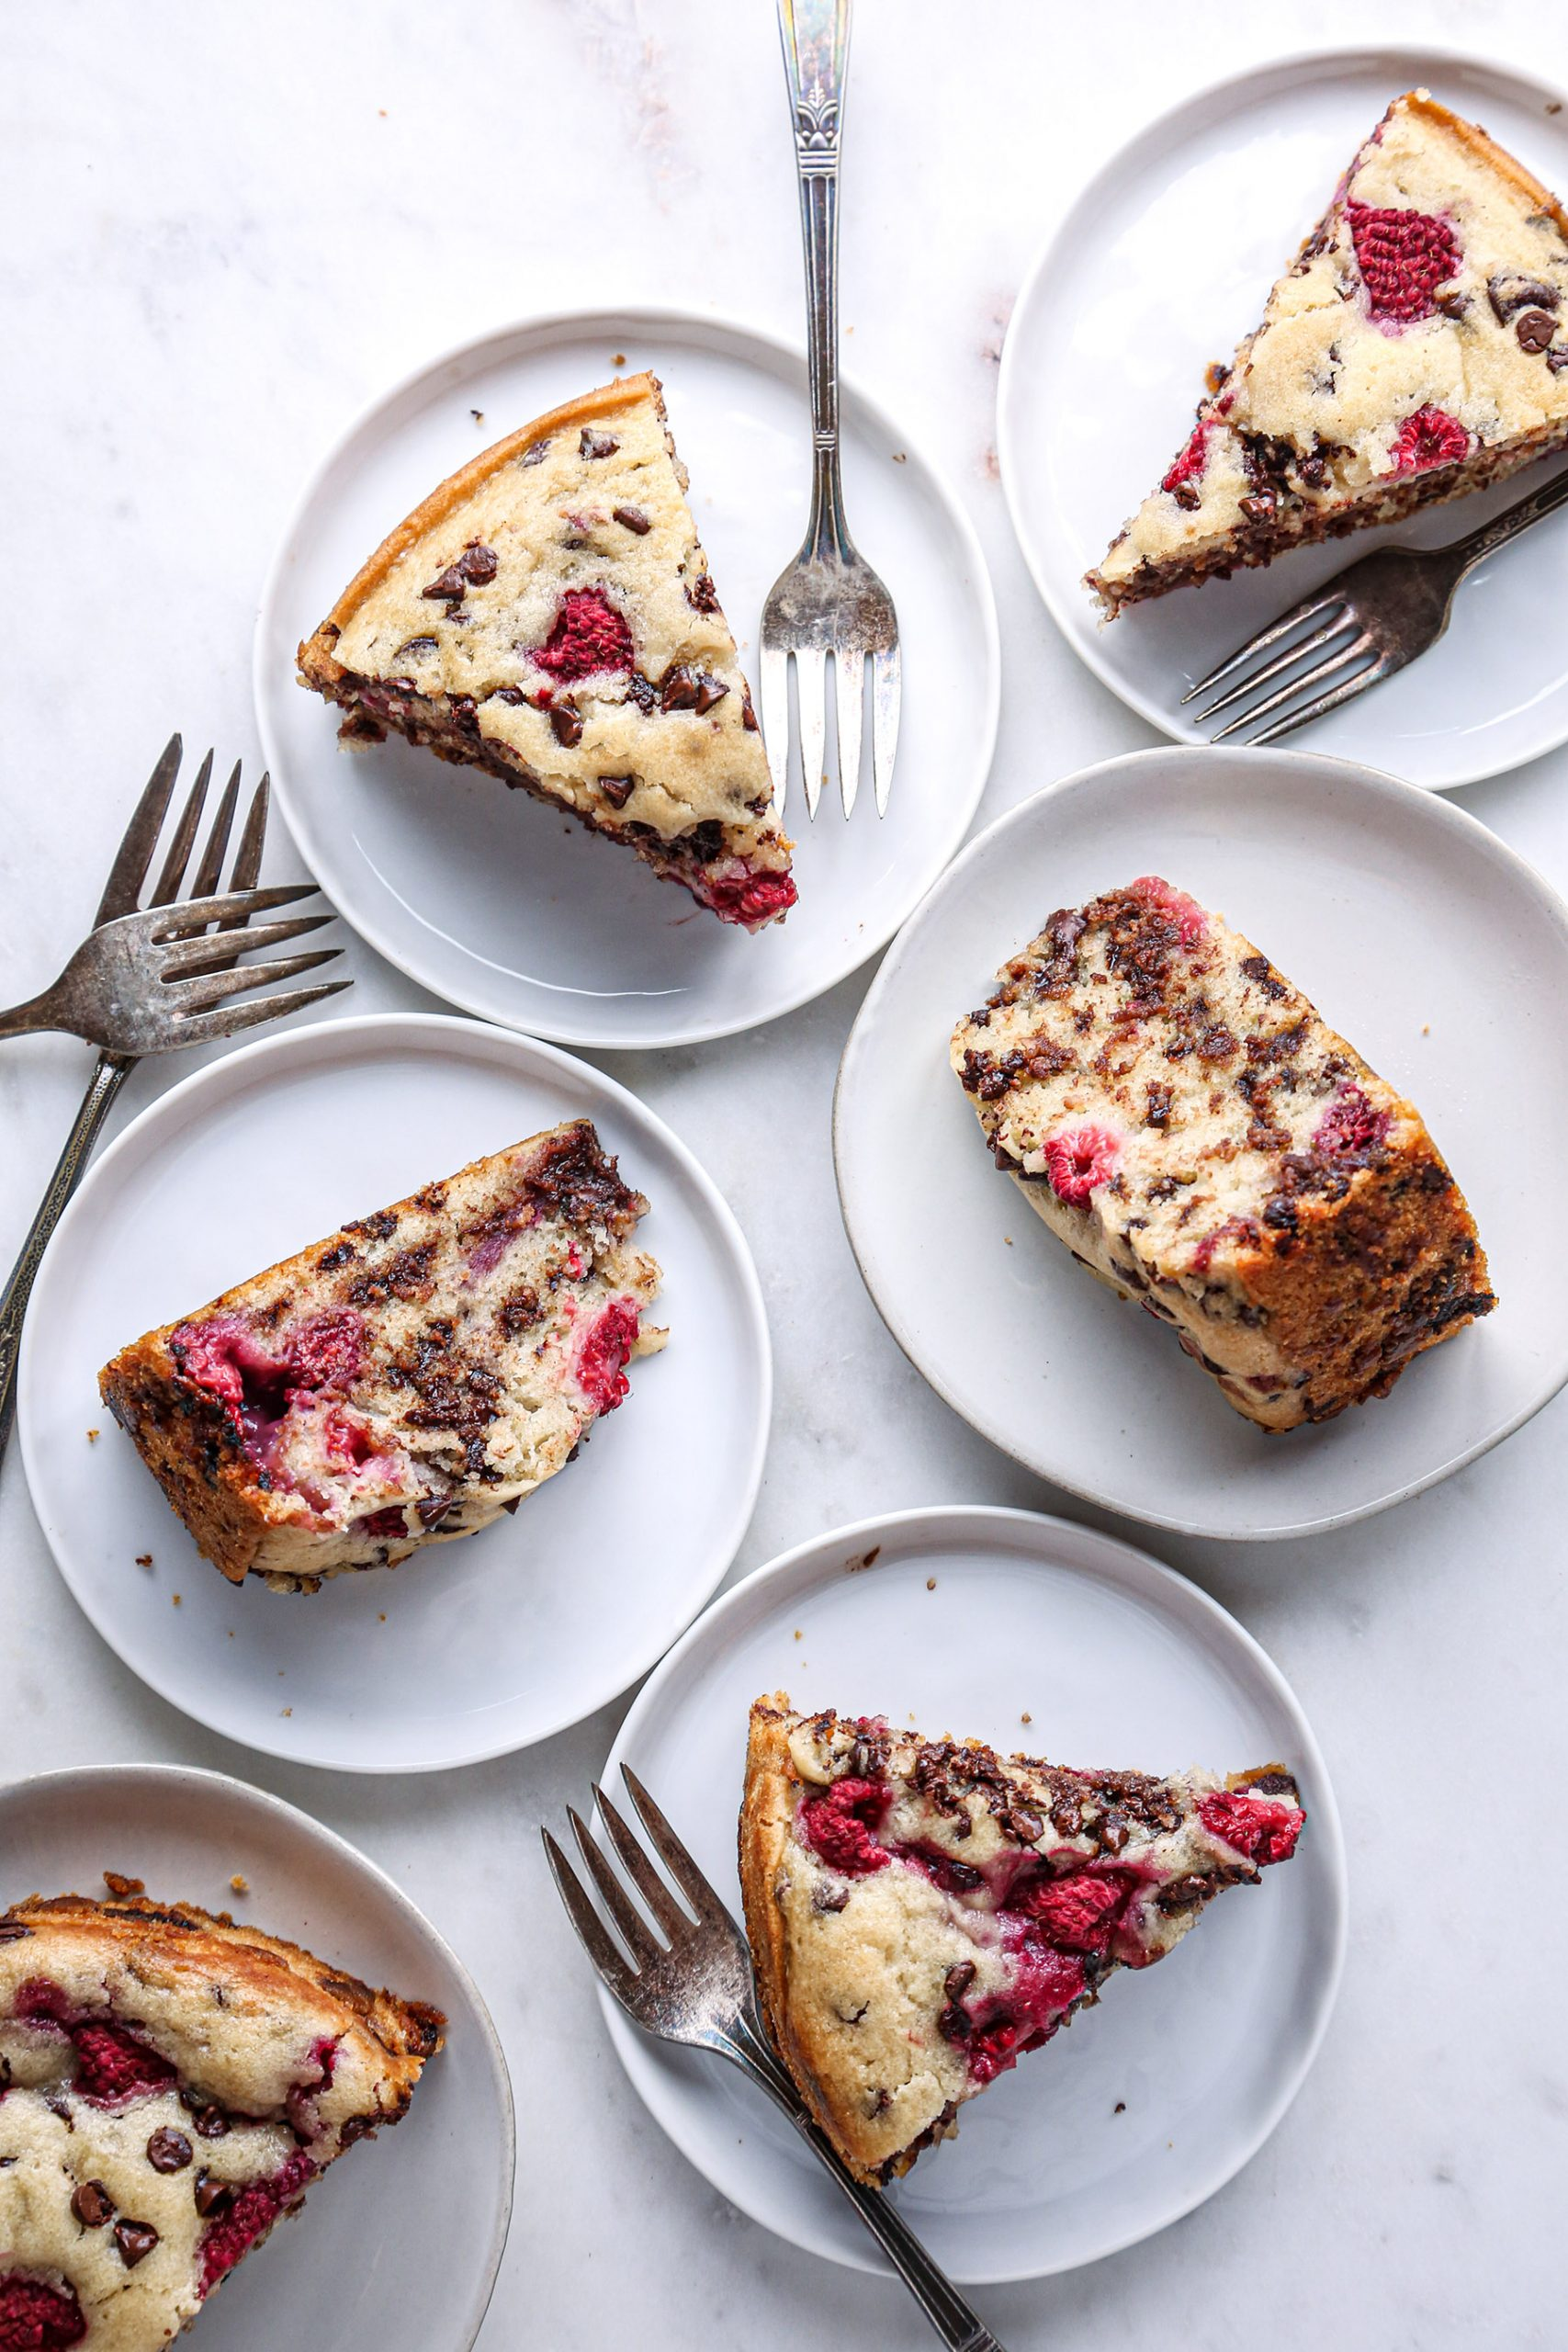 Raspberry Chocolate Chip Cake | Vegan with gluten free and refined sugar free options.